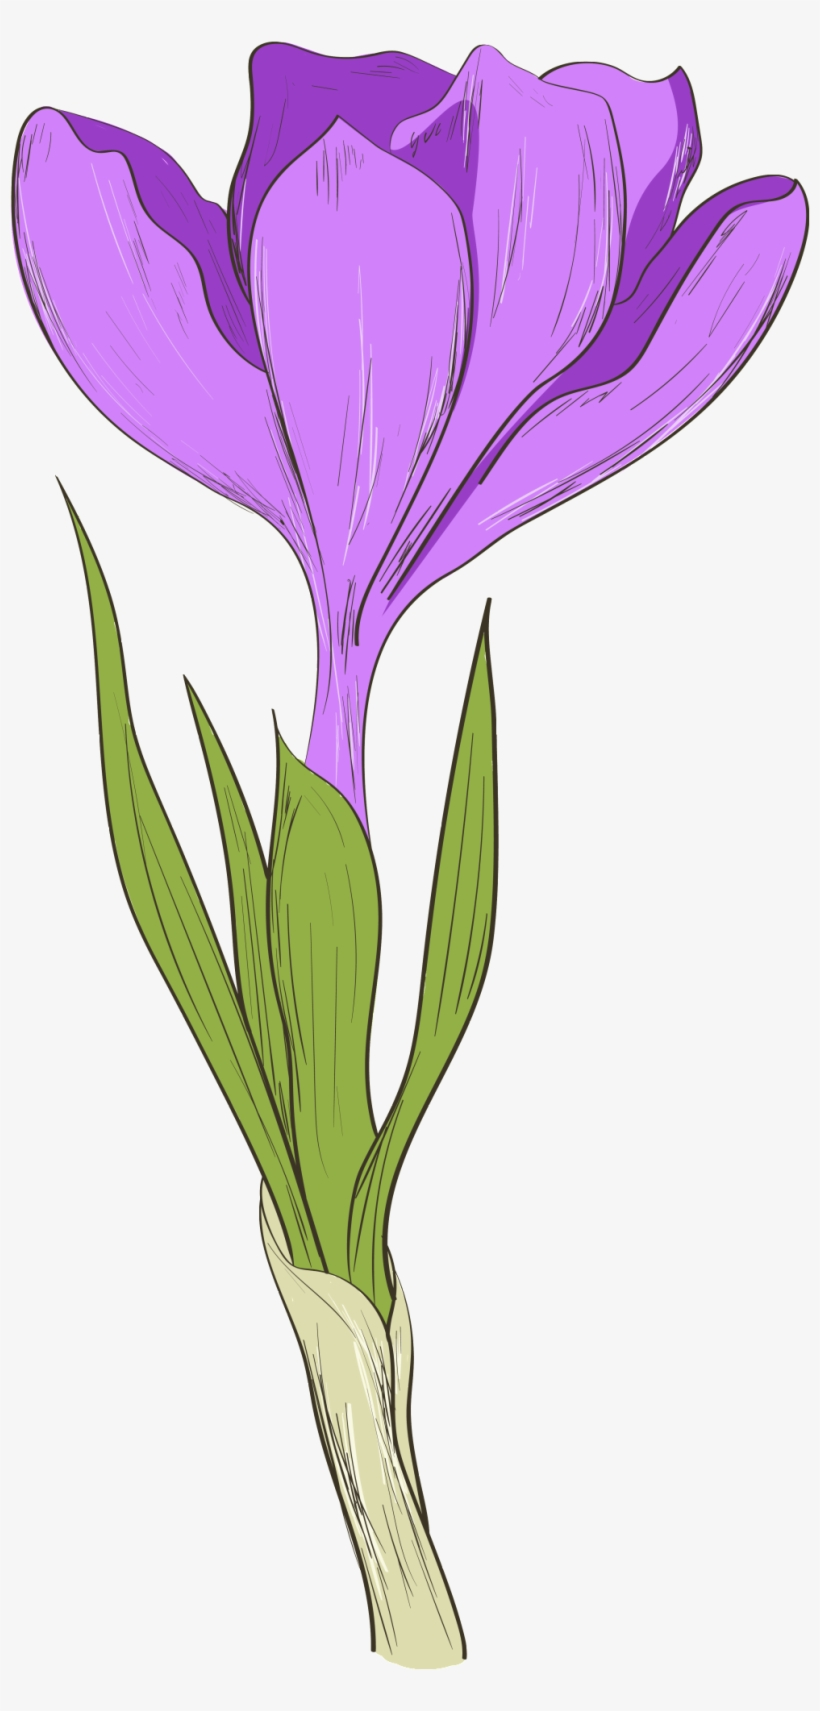 This Graphics Is Hand Painted A Purple Flower Transparent - Flower, transparent png #135709